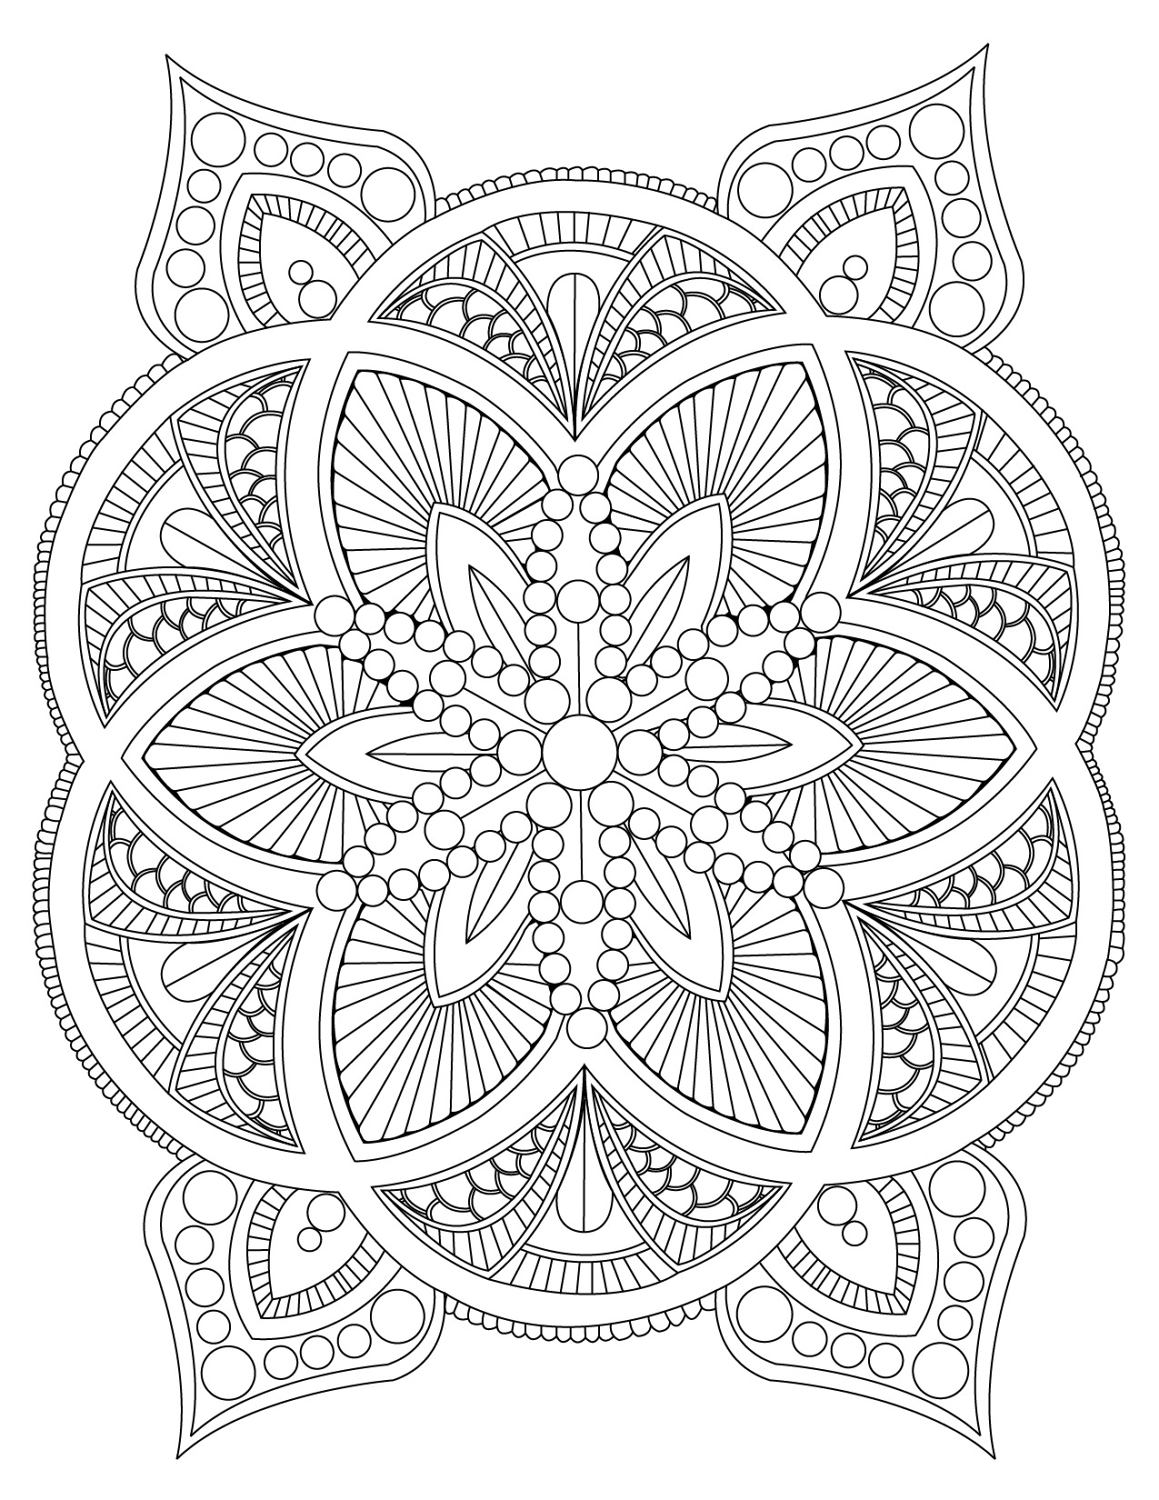 free mandala coloring pages for adults get this free mandala coloring pages for adults 42893 coloring free adults pages for mandala